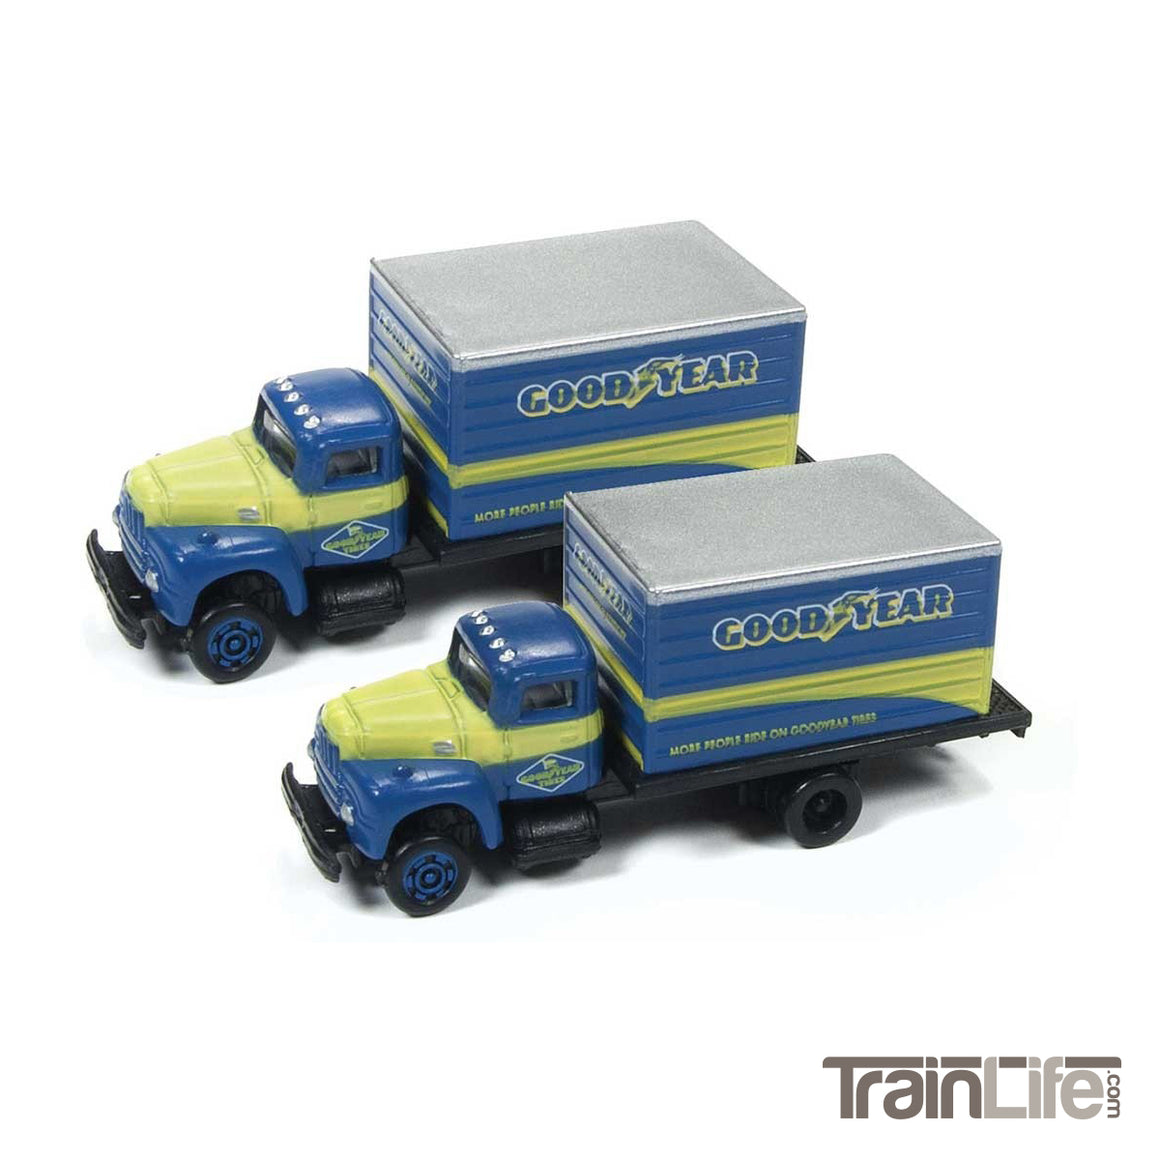 N Scale: IH R190 Delivery Box Truck - Goodyear - 2 Pack